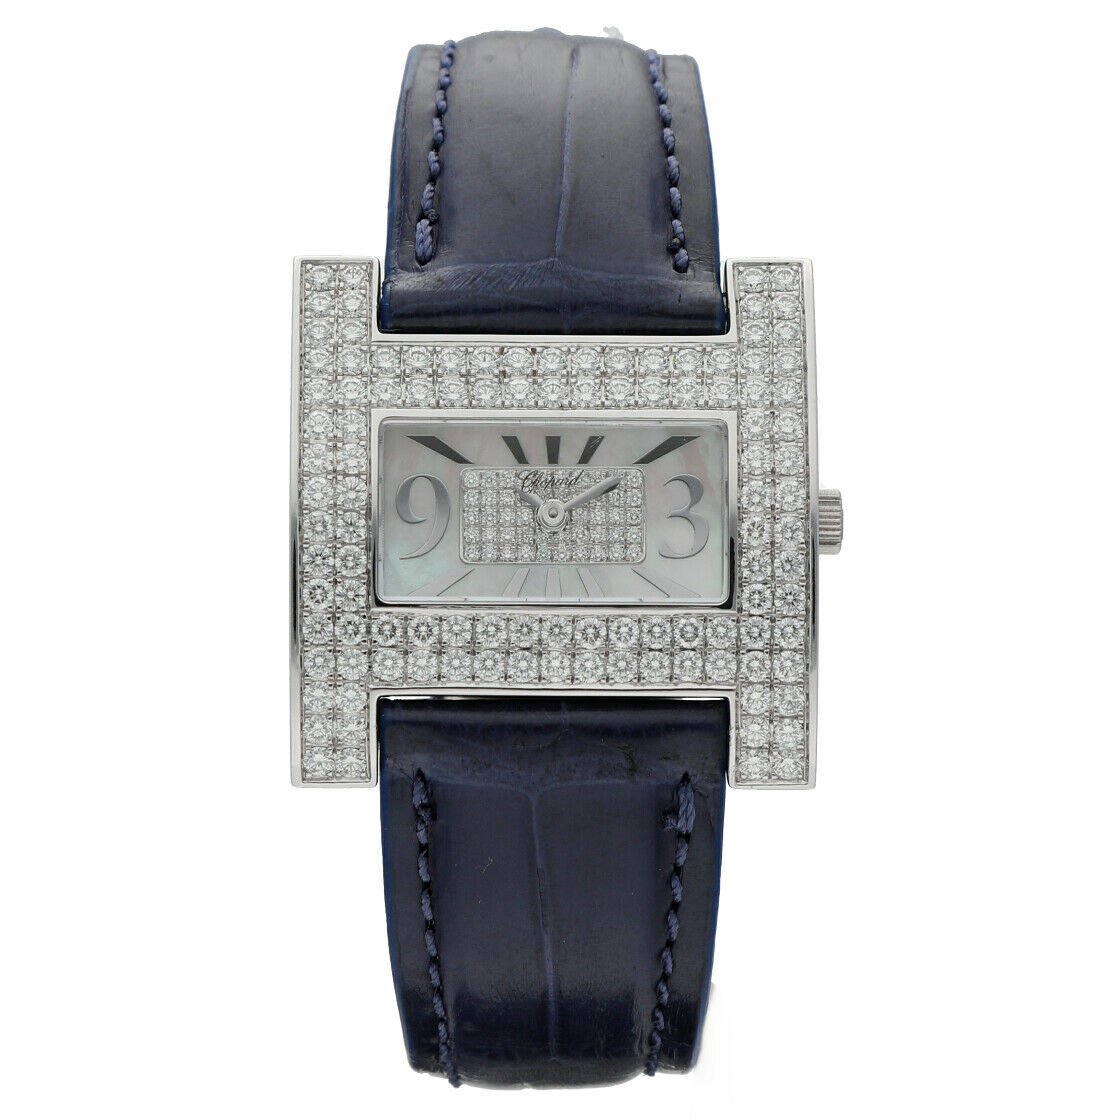 Chopard Classique 139224 1001 18k WG Diamonds 271Ct MOP Dial Ladies Watch 133282396531